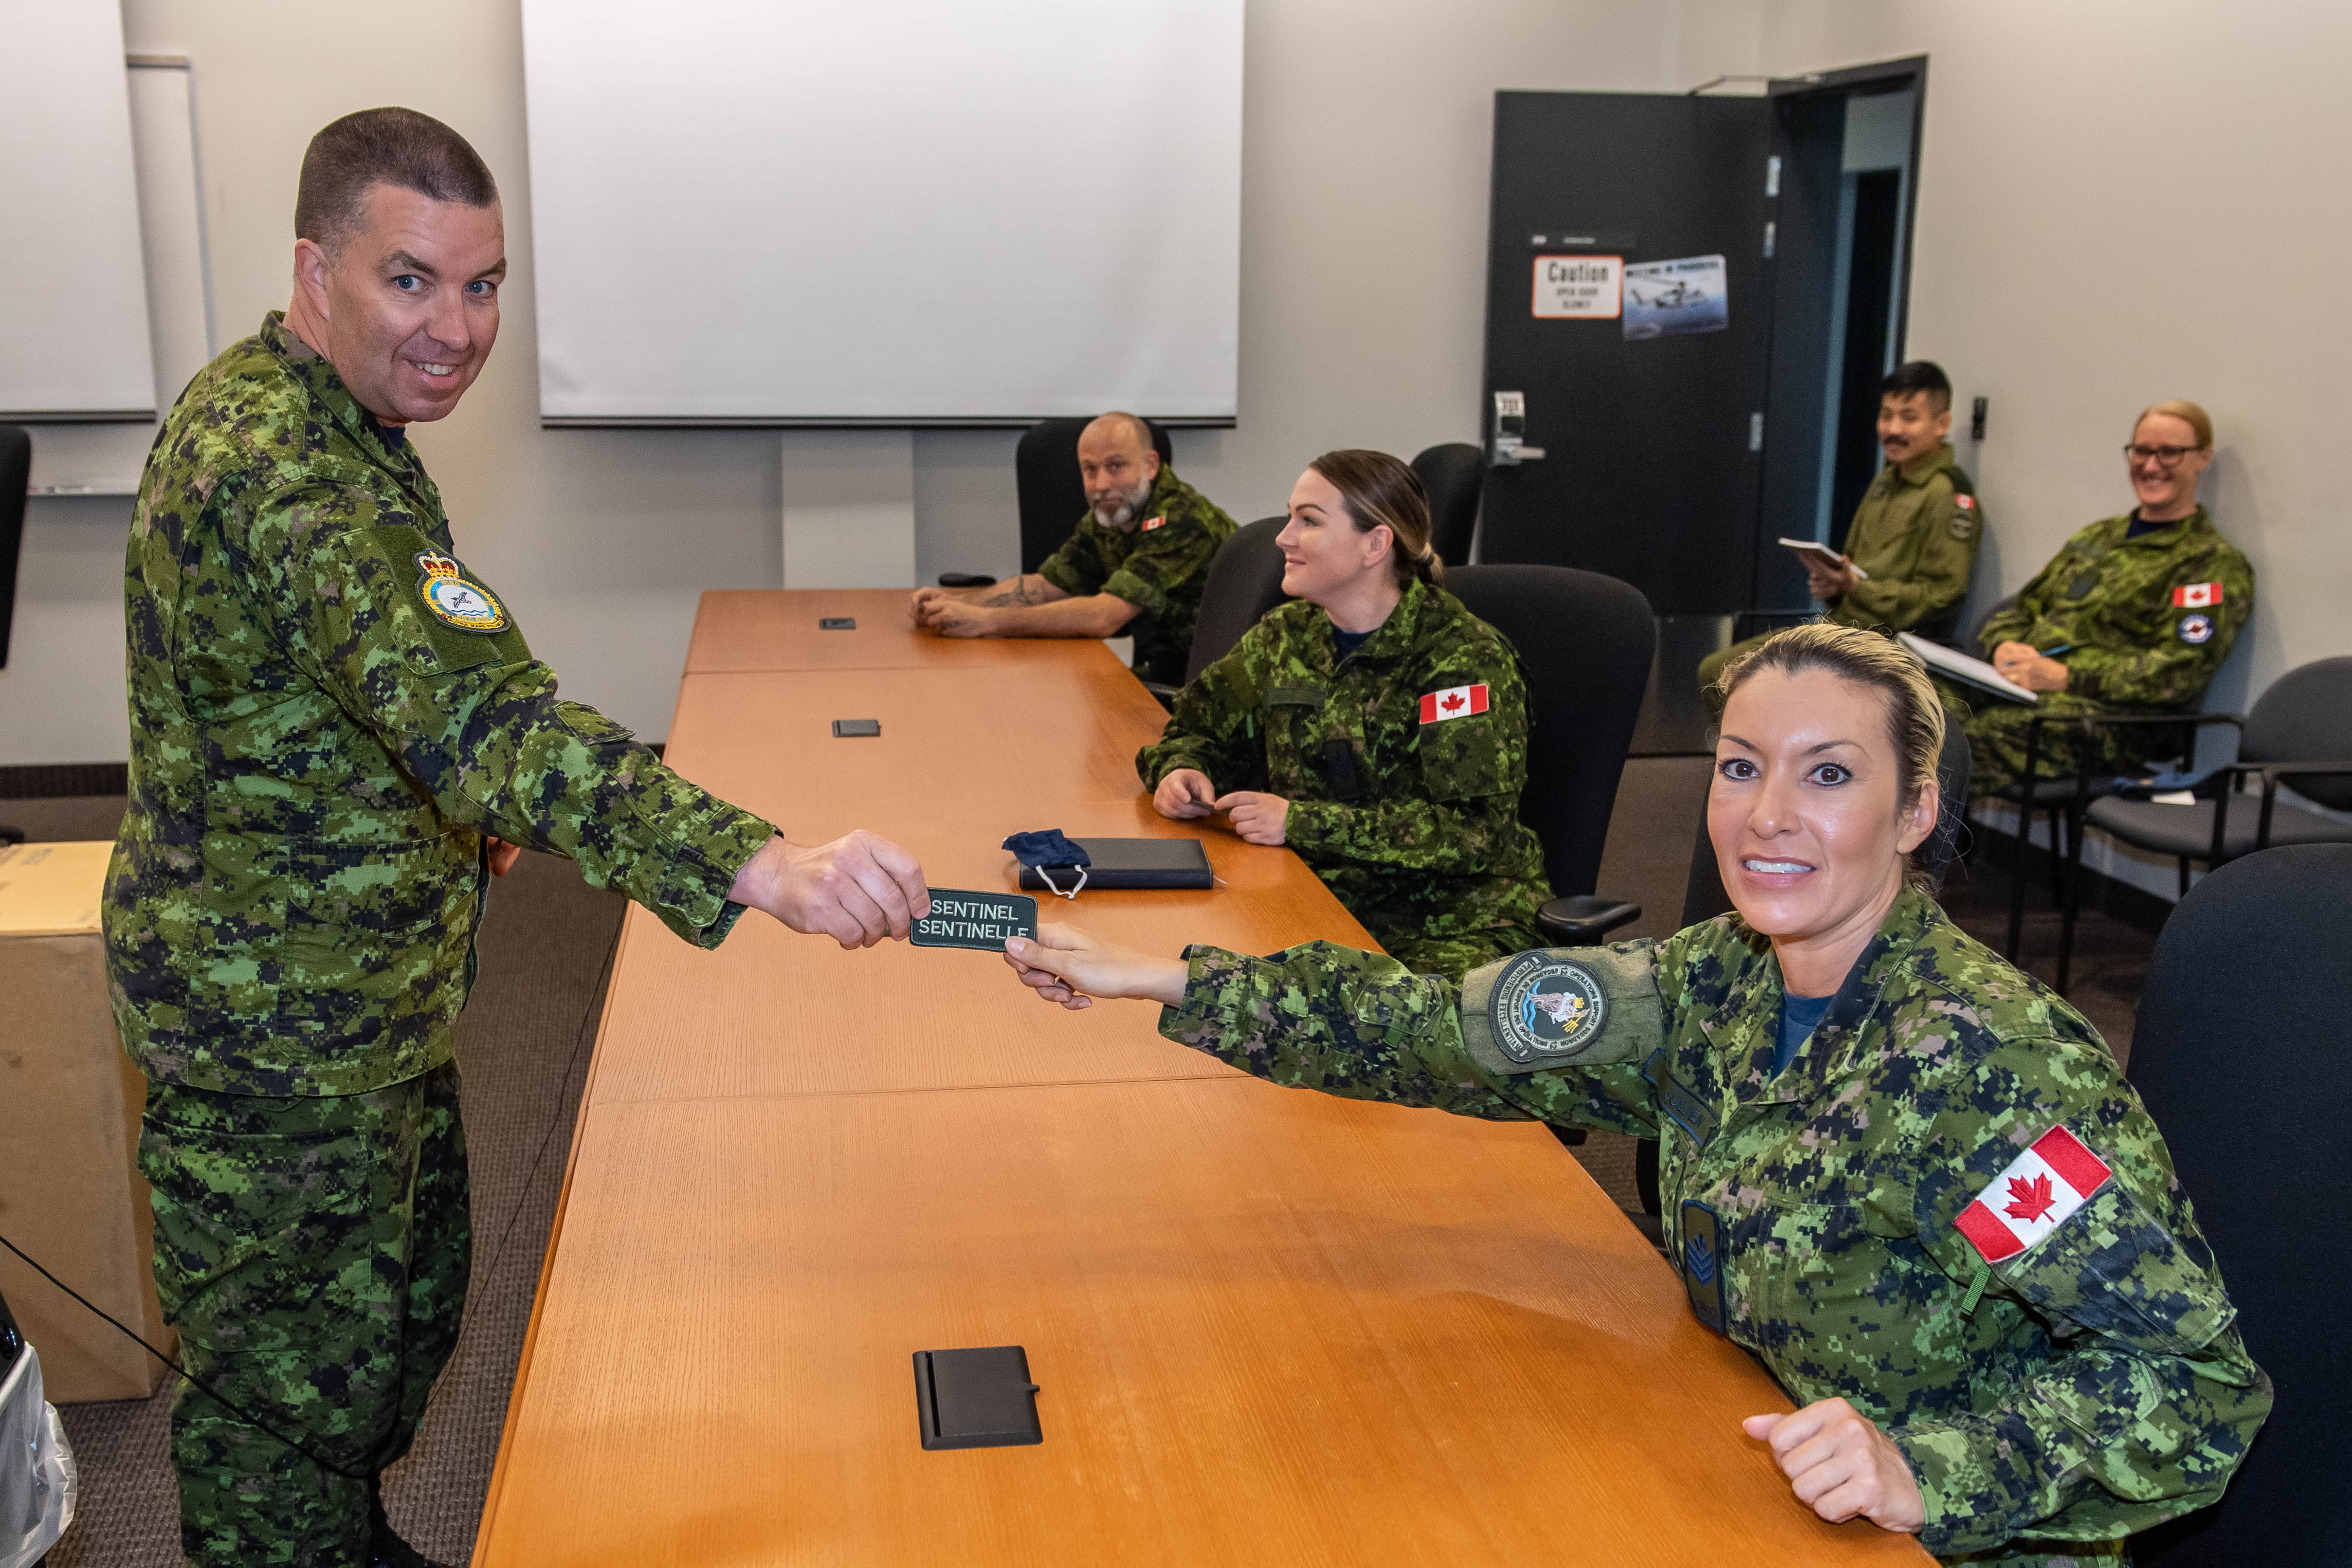 Six people wearing military uniforms are in a room. Five of them sit on chairs and the one who is standing gives a patch badge to one of the people sitting.